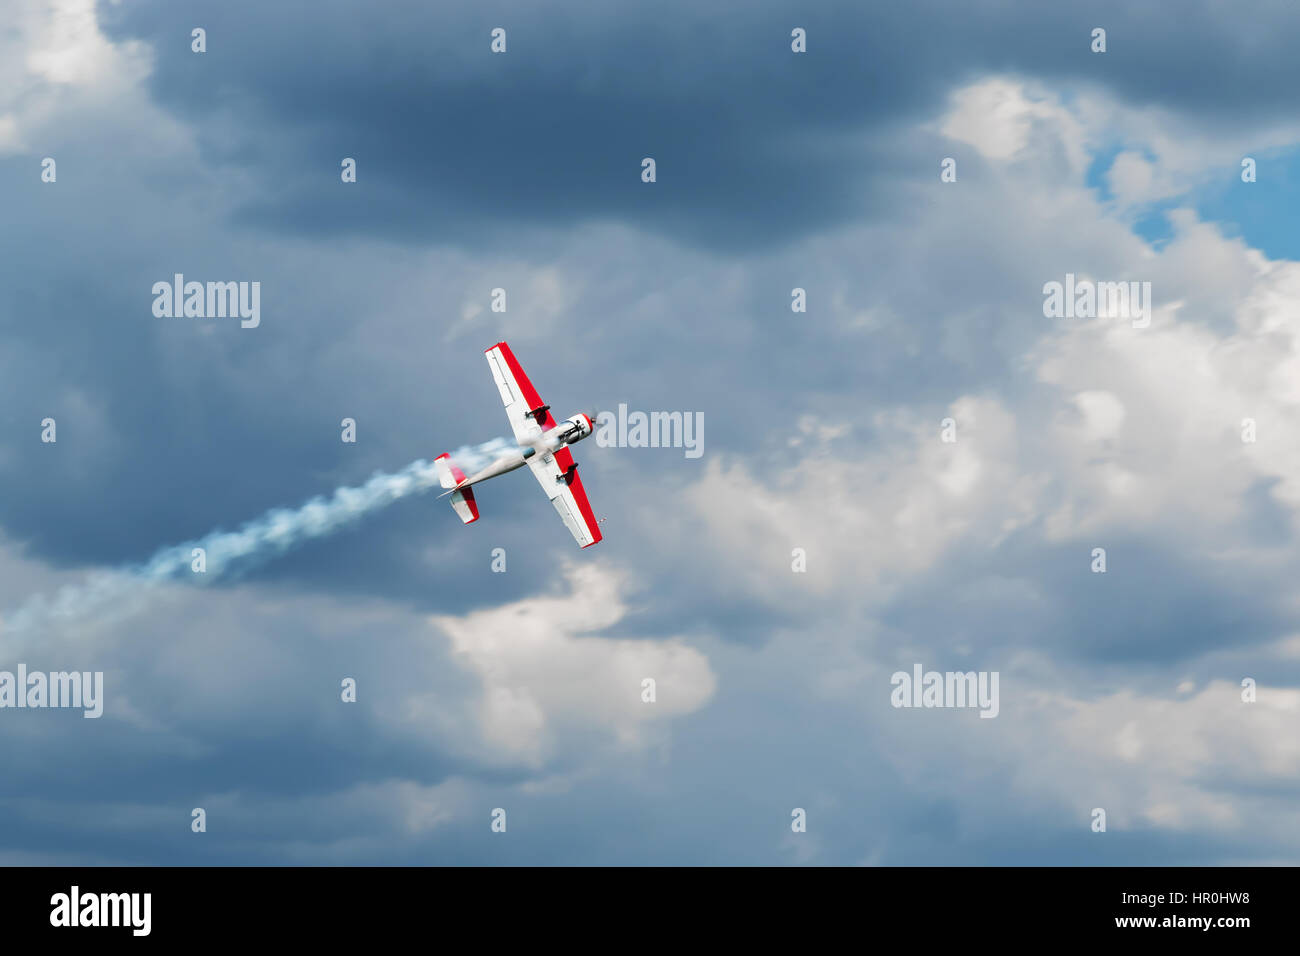 Red - white plane jets of fumes in flight in a blue sky close-up - Stock Image